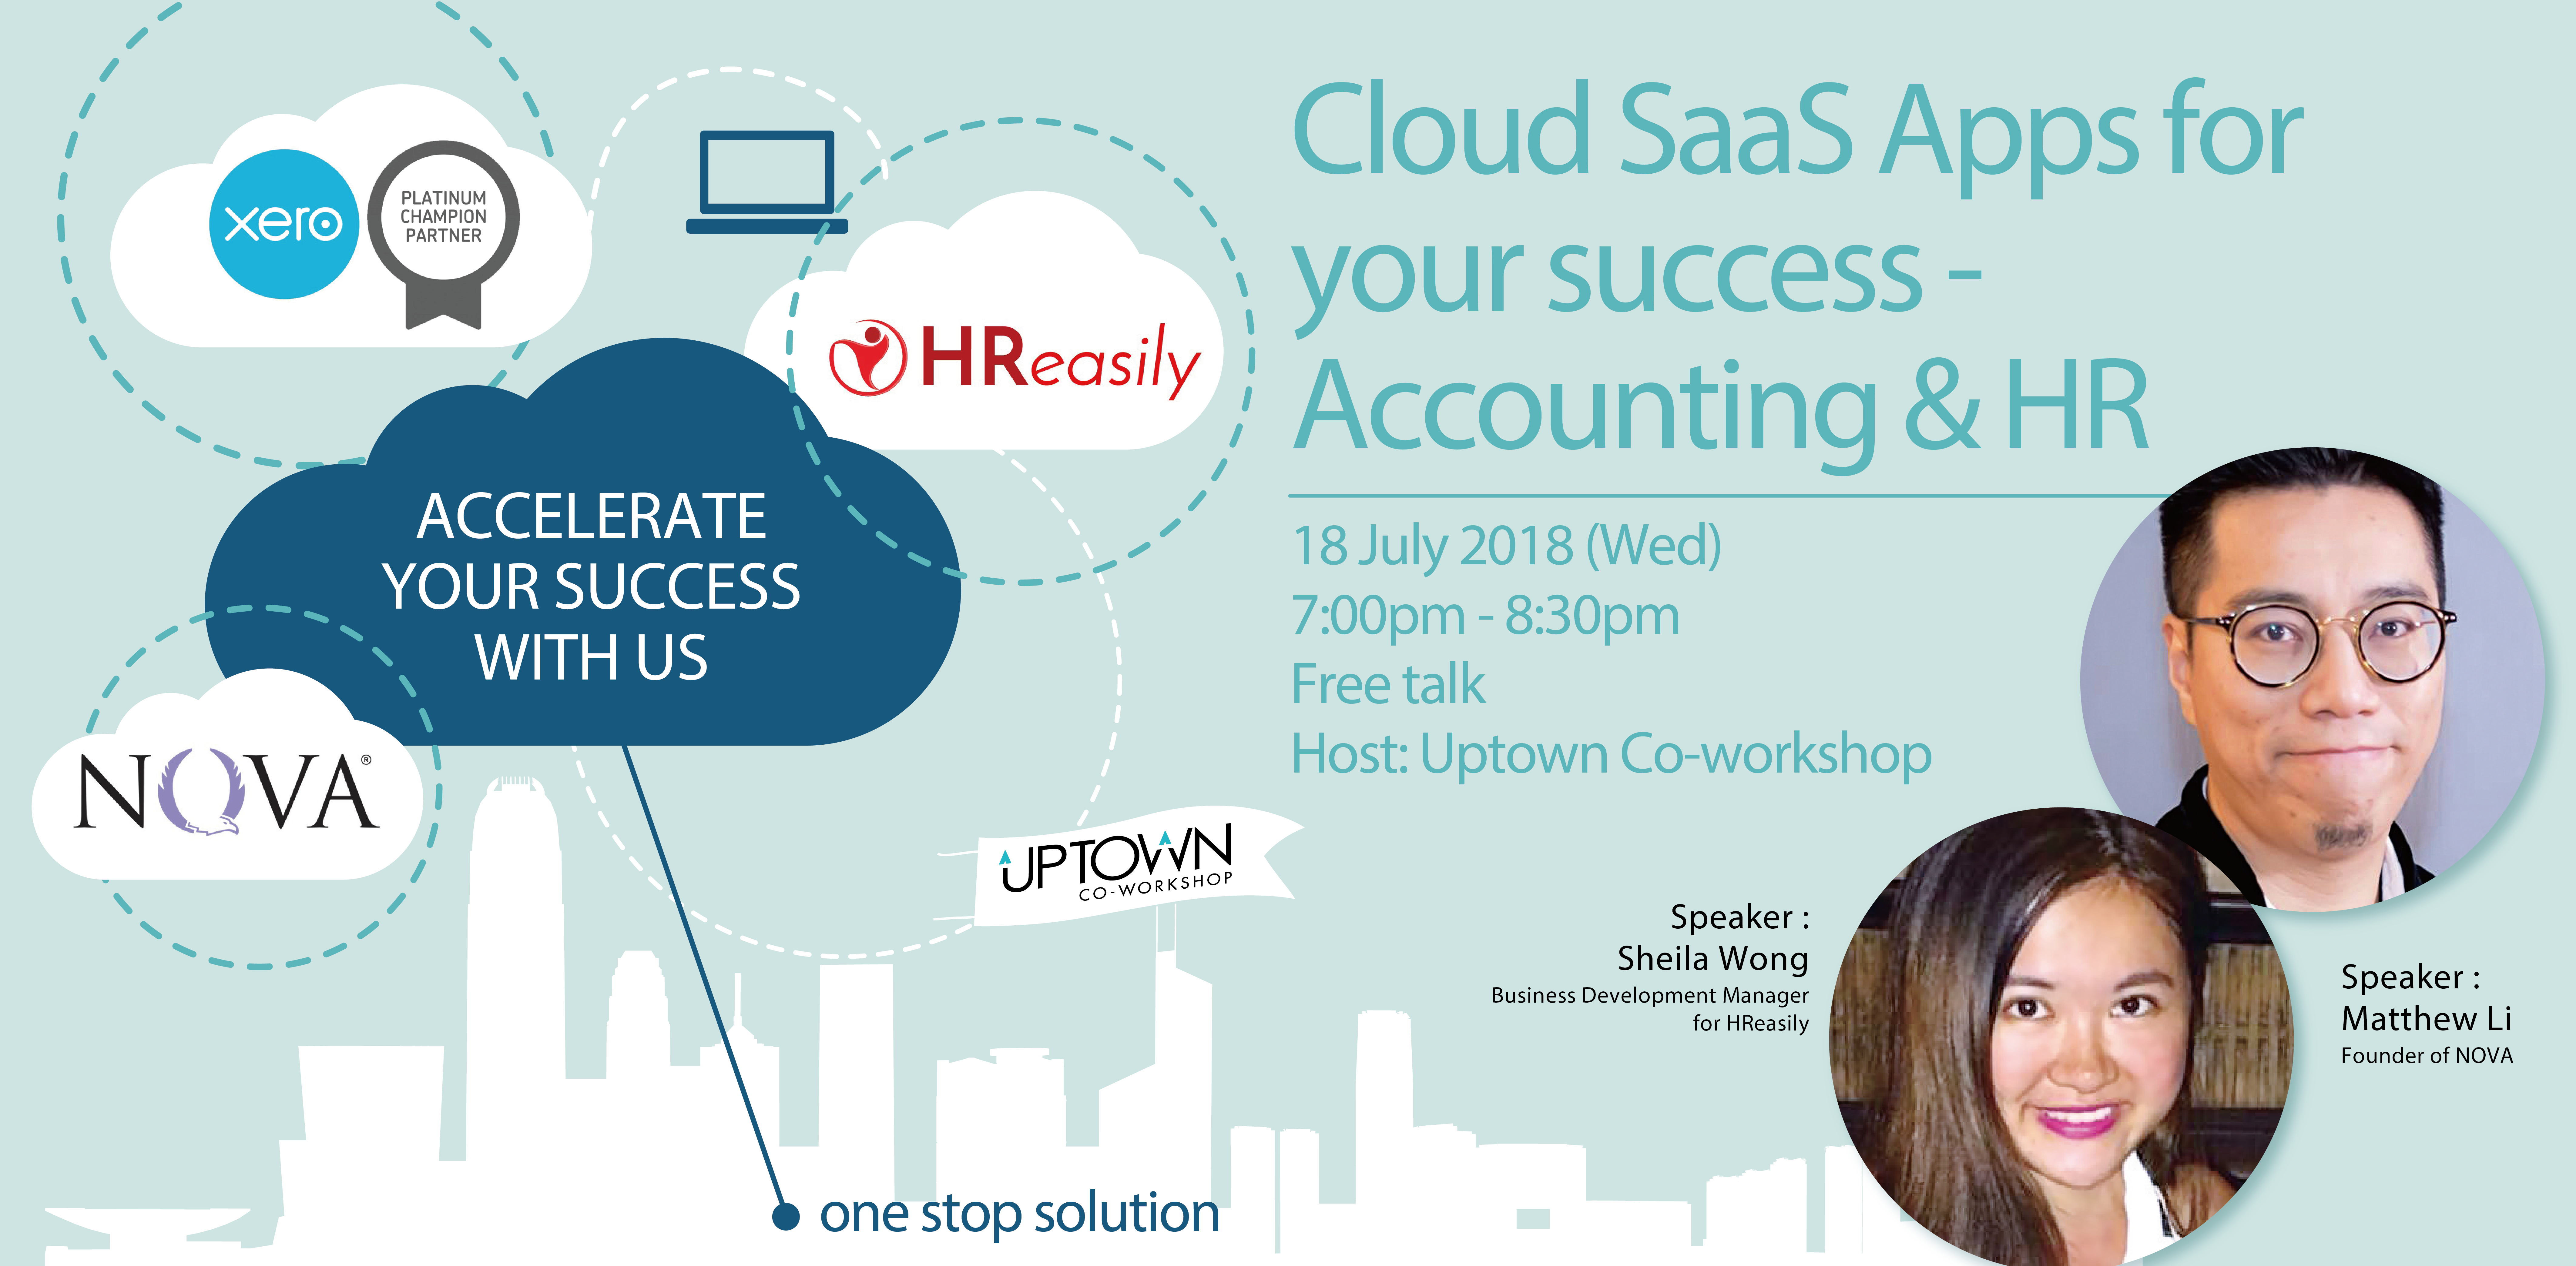 Cloud SaaS Apps For Your Success- Accounting & HR